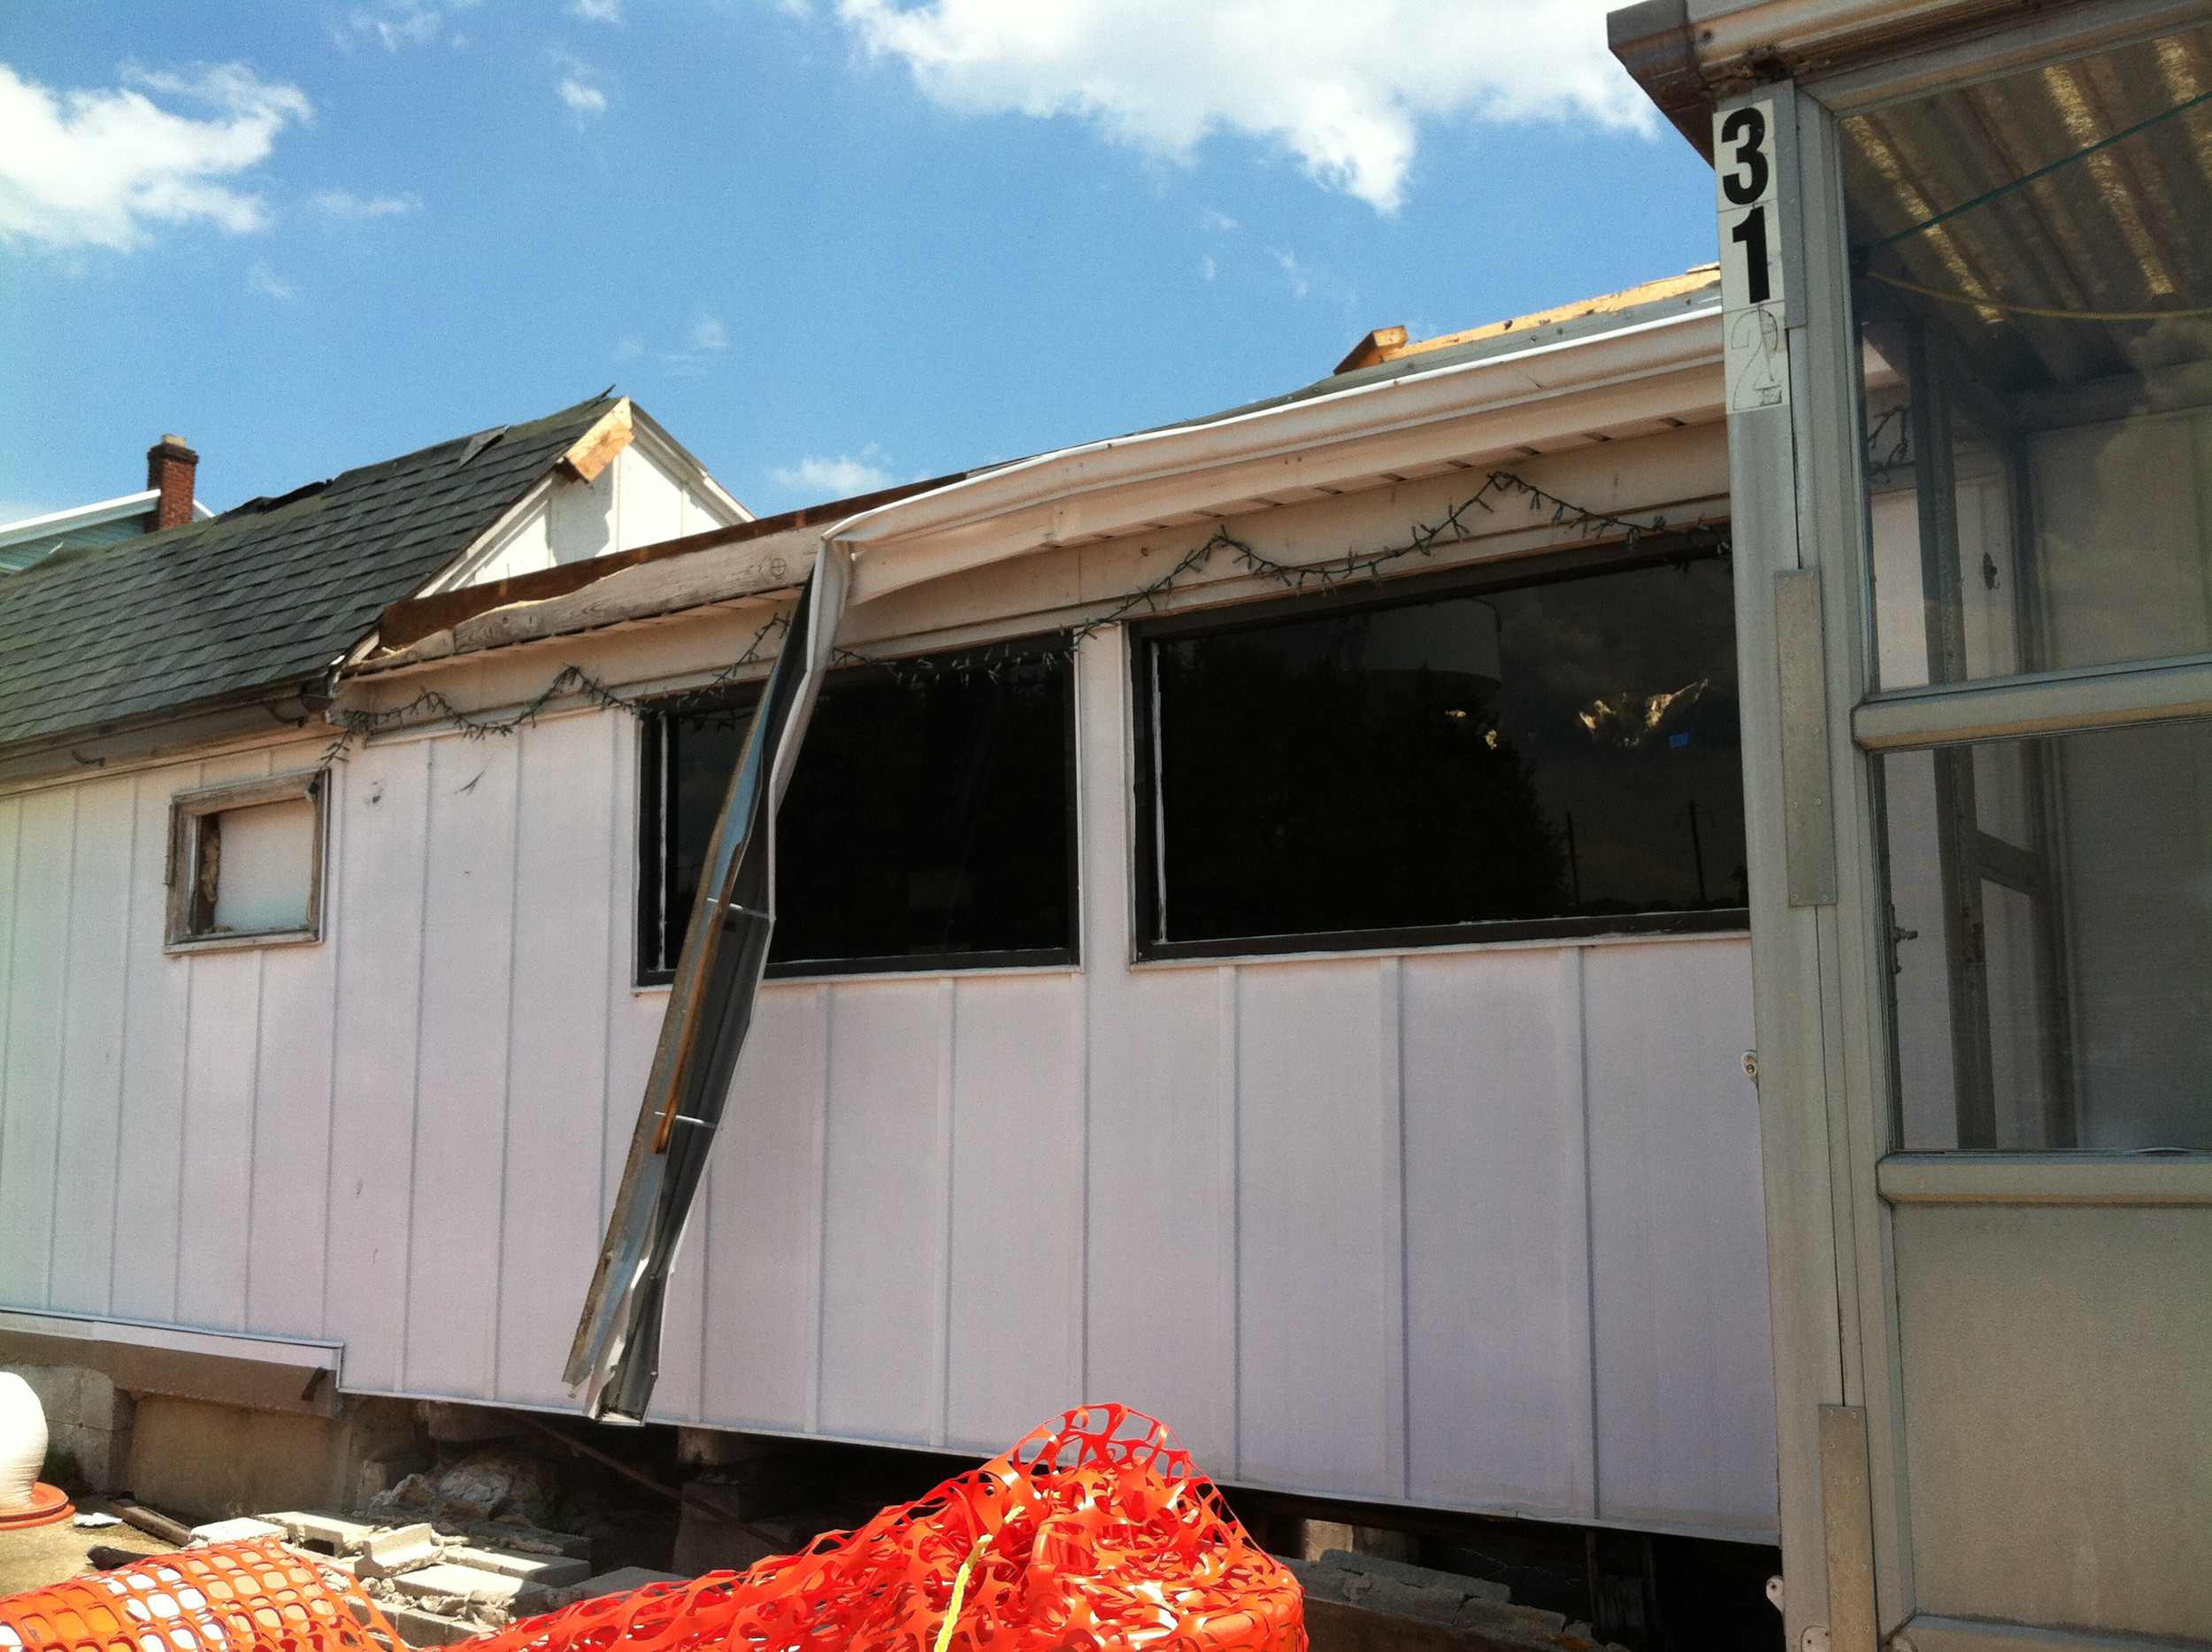 This June 30 photo shows work underway to demolish the former diner.